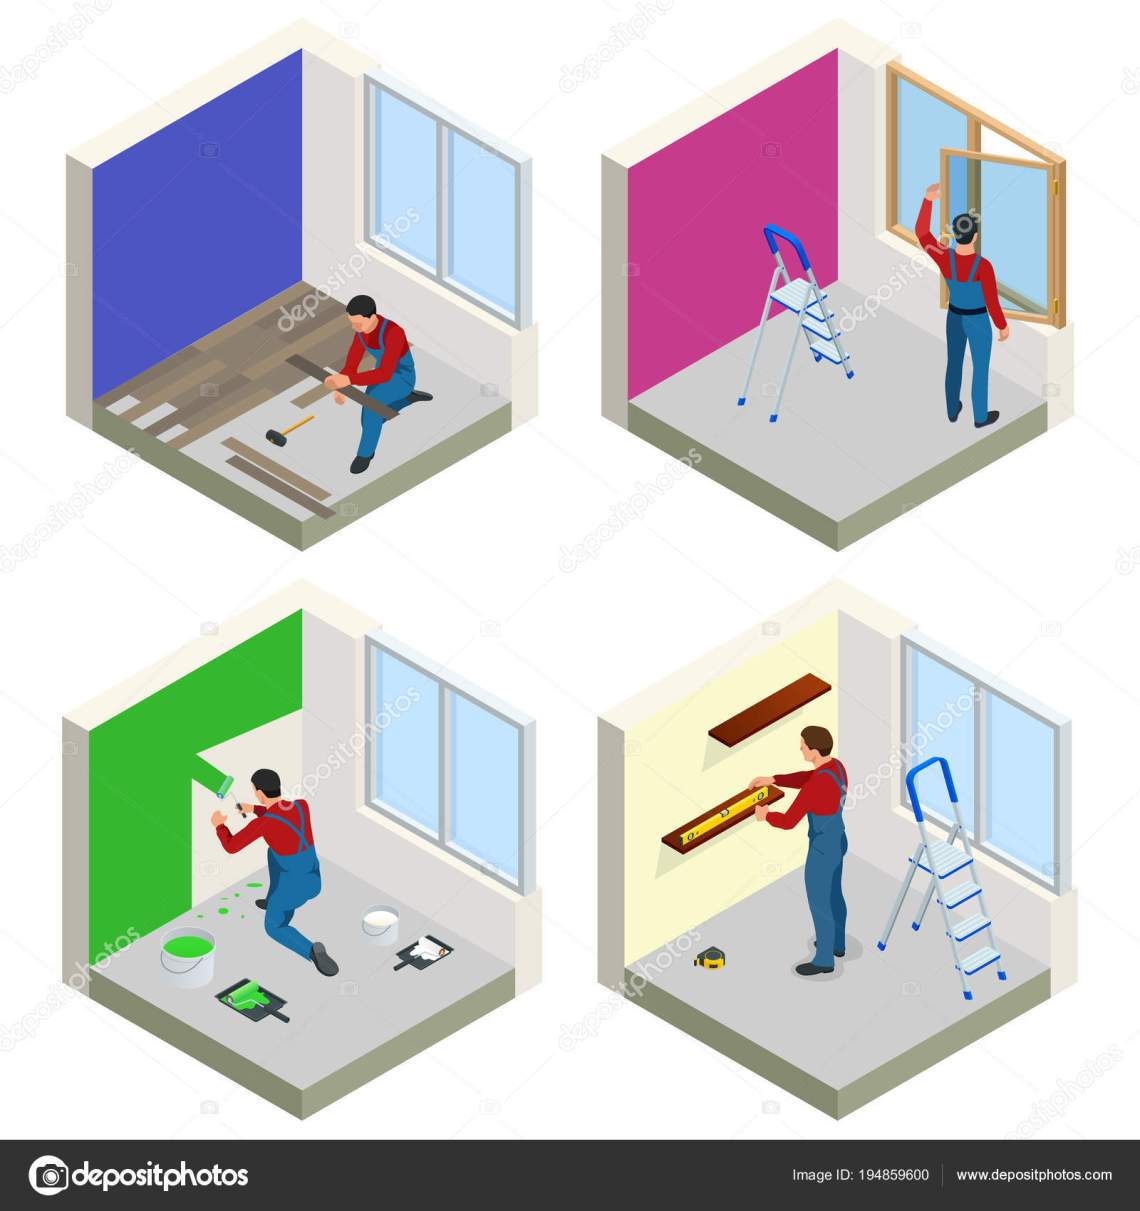 Home Repair Isometric Concept Set With Workers Tools Equipment Isolated On White Building Construction And Home Repair Tools Vector Flat Isometric Illustration Stock Vector Royalty Free Vector Image By C Golden Sikorka 194859600